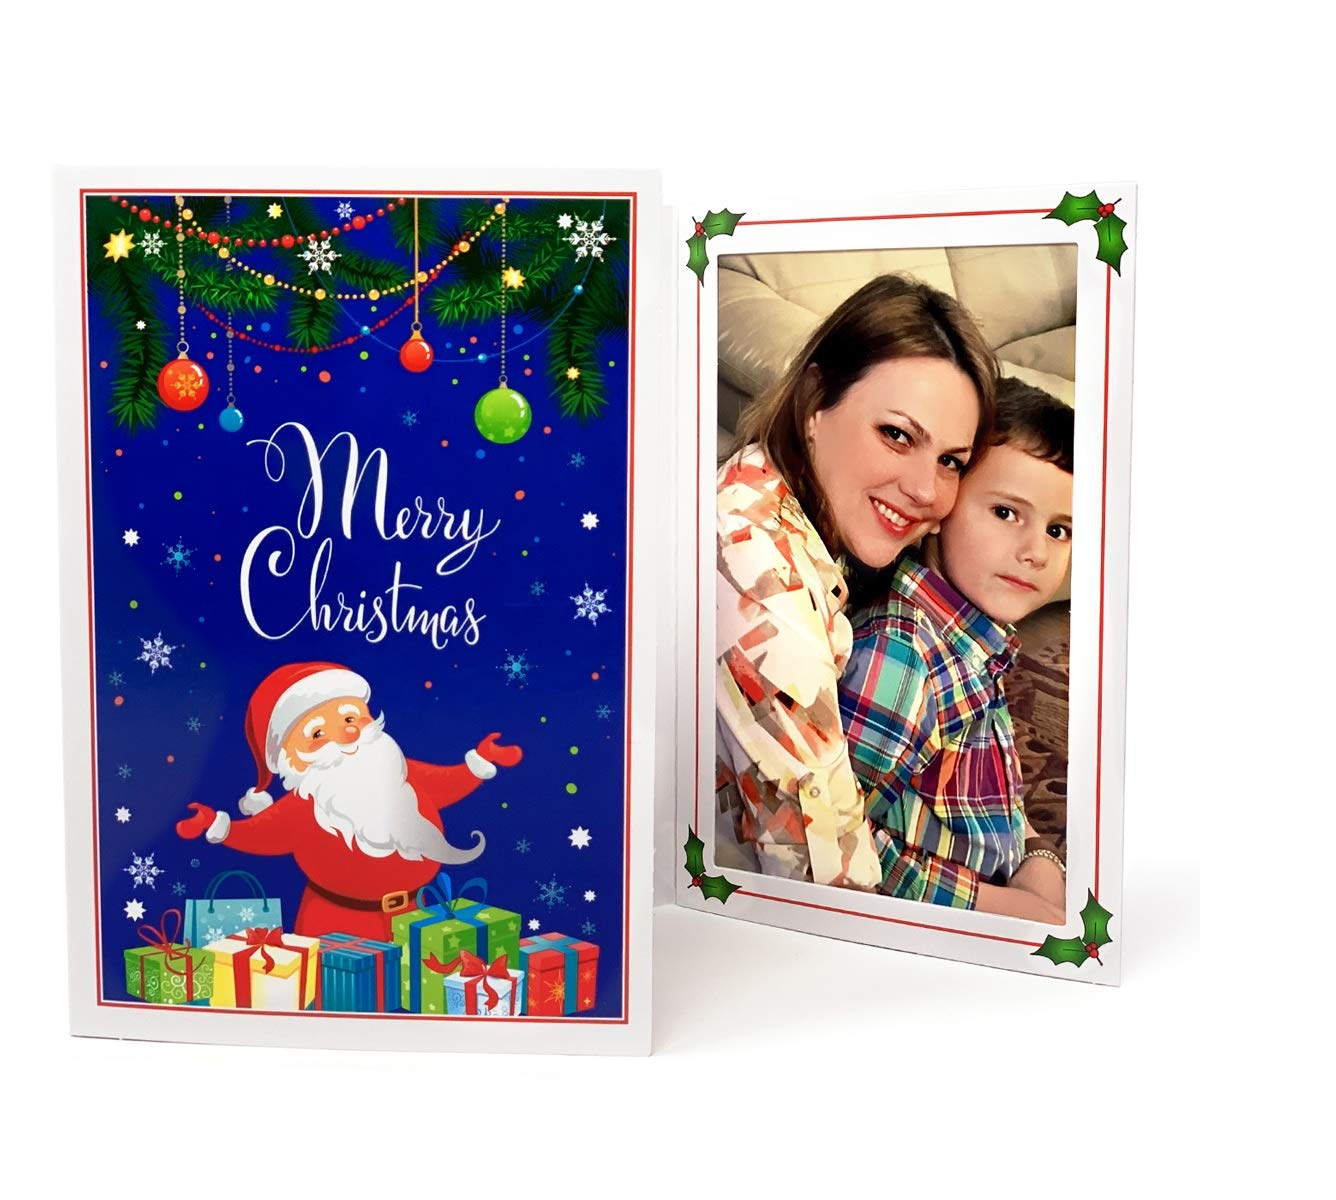 Santa Claus Sleigh 4x6 Photo Folder - Pack of 100 folders (Slide-in Insert Type). These Beautiful Holiday Photo folders are Great for Christmas Parties and Santa Portraits! by Tapan